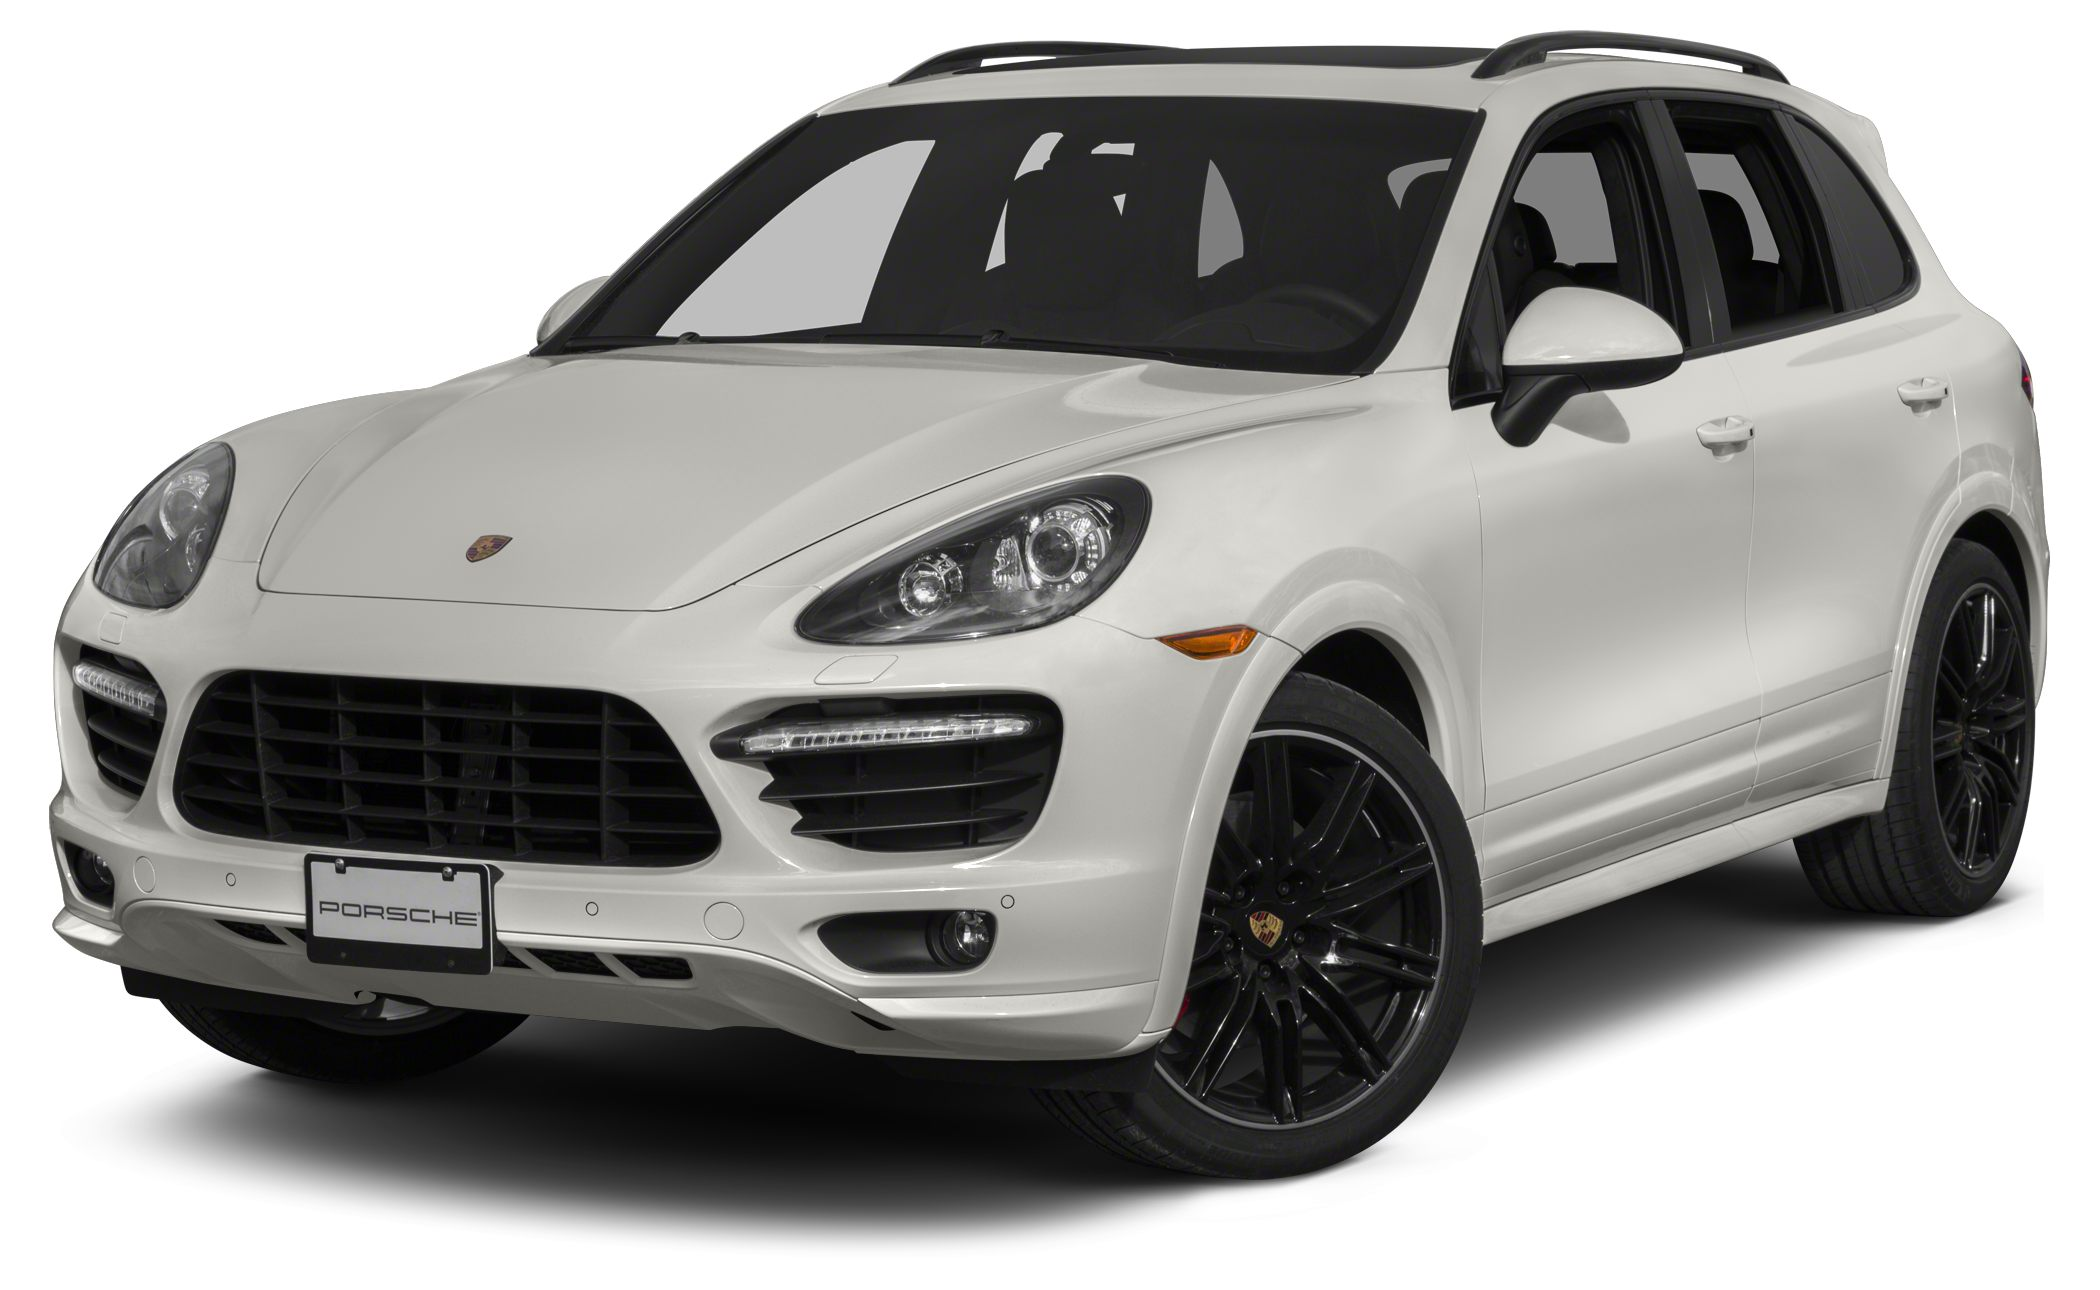 2013 Porsche Cayenne GTS CAYENNE GTS LOCAL VEHICLE UPGRADES INCLUDE NAVIGATION REAR